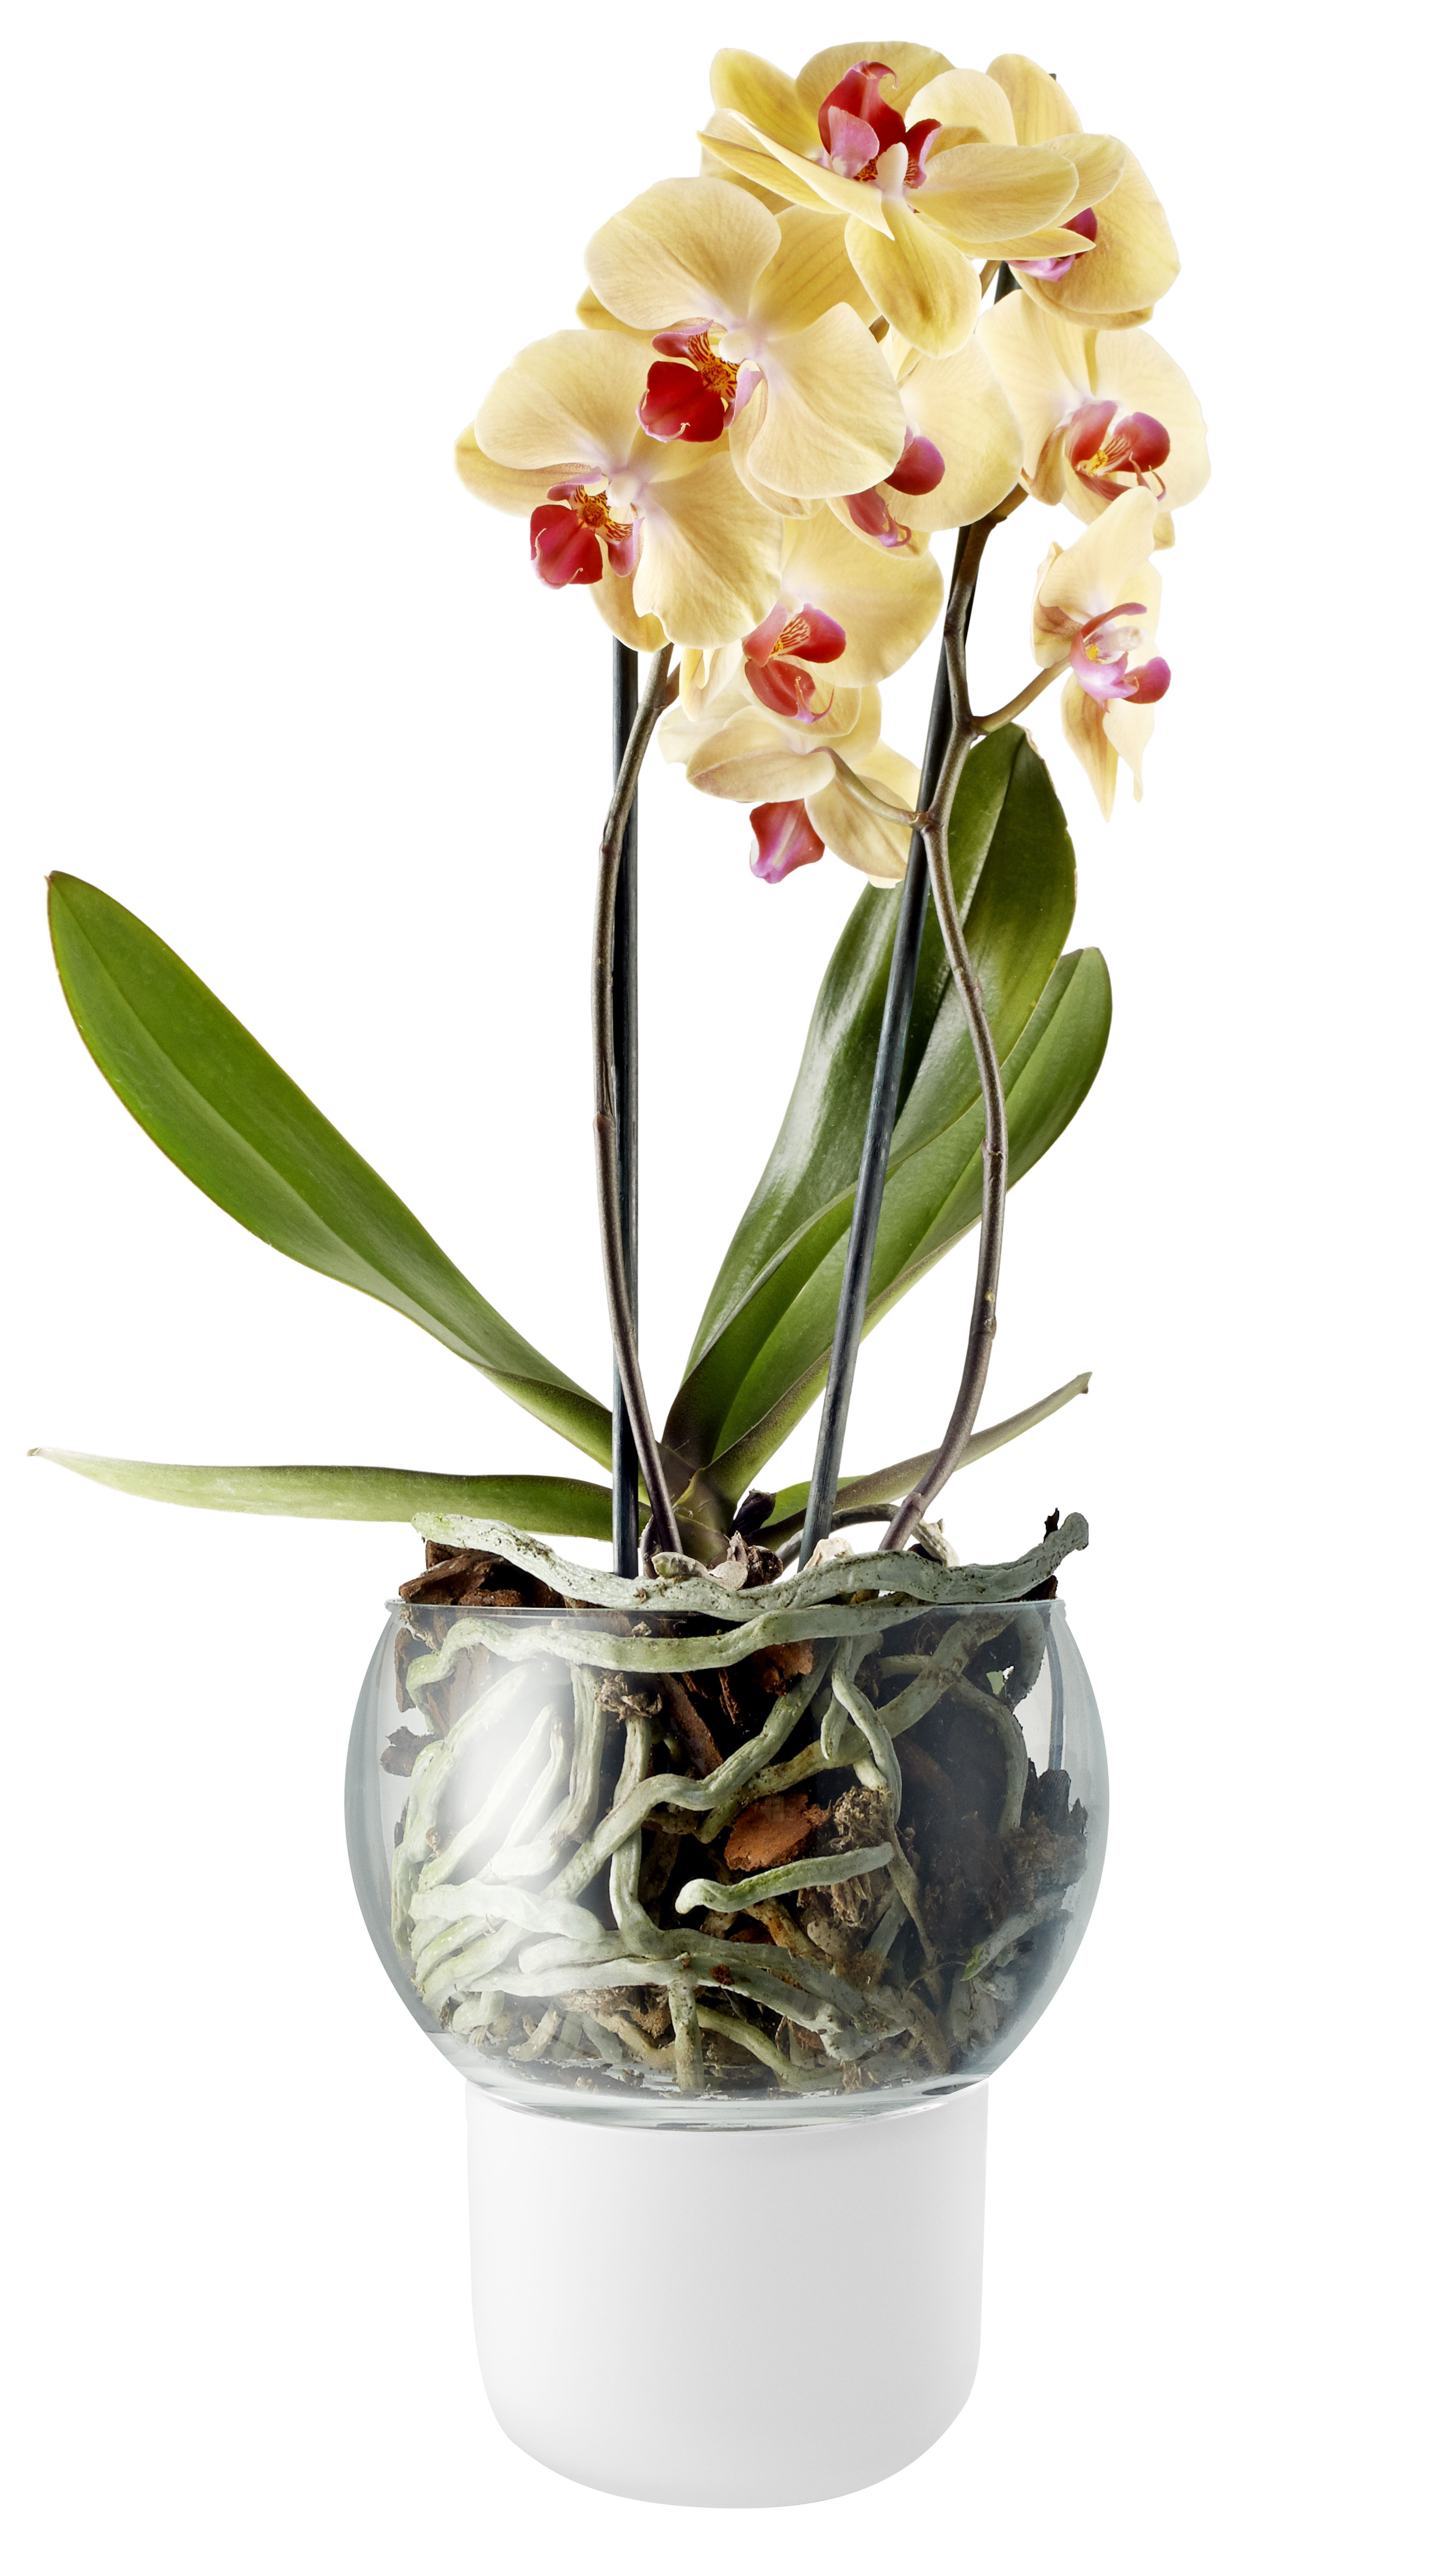 Decoration - Flower Pots & House Plants - Pot water storage - / With water tank - Ø 15 cm by Eva Solo - White - Mouth blown glass, Opal glass